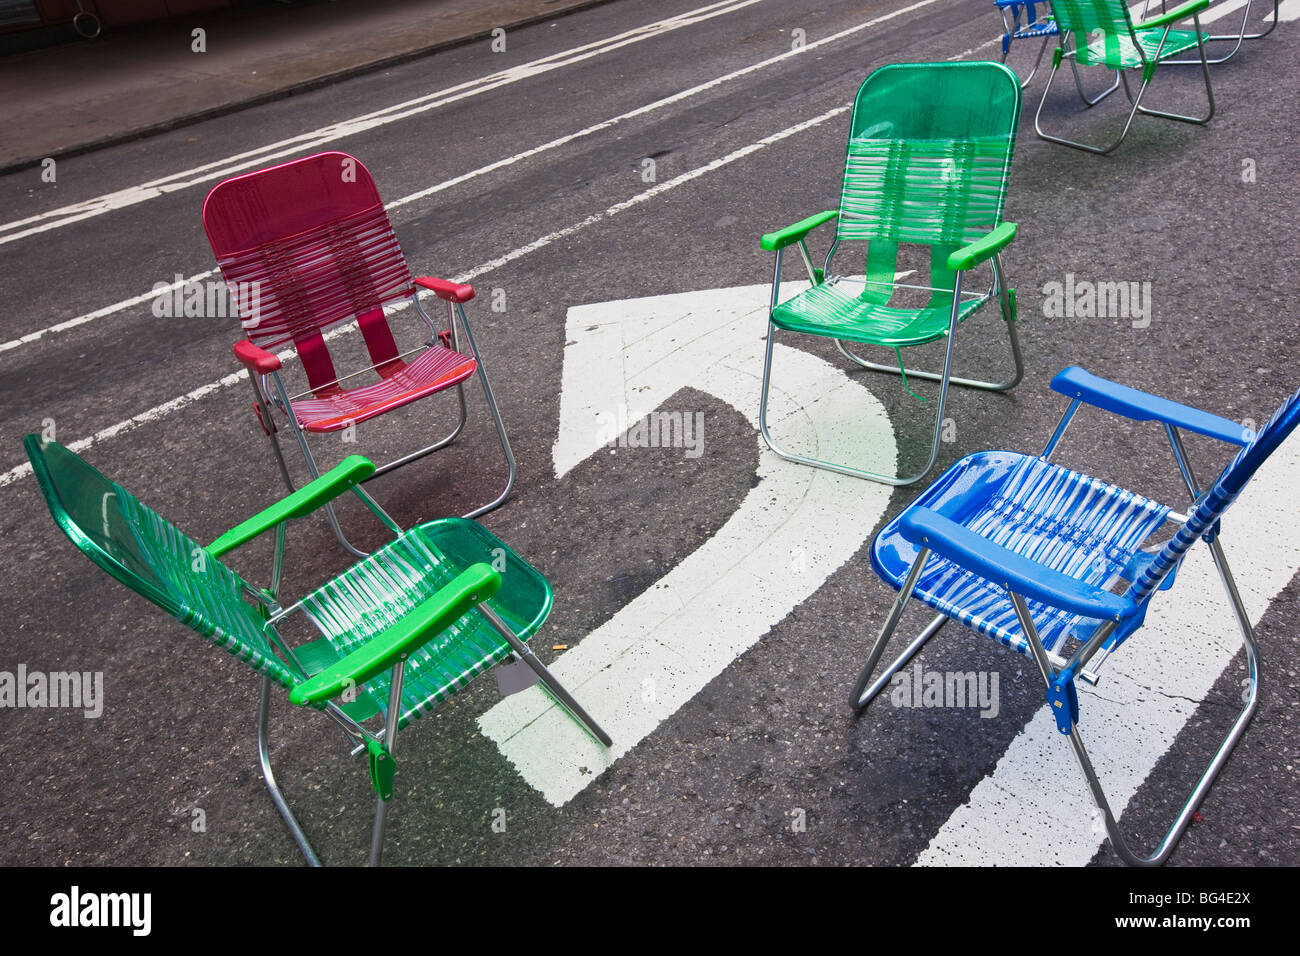 garden chairs stock photos garden chairs stock images alamy